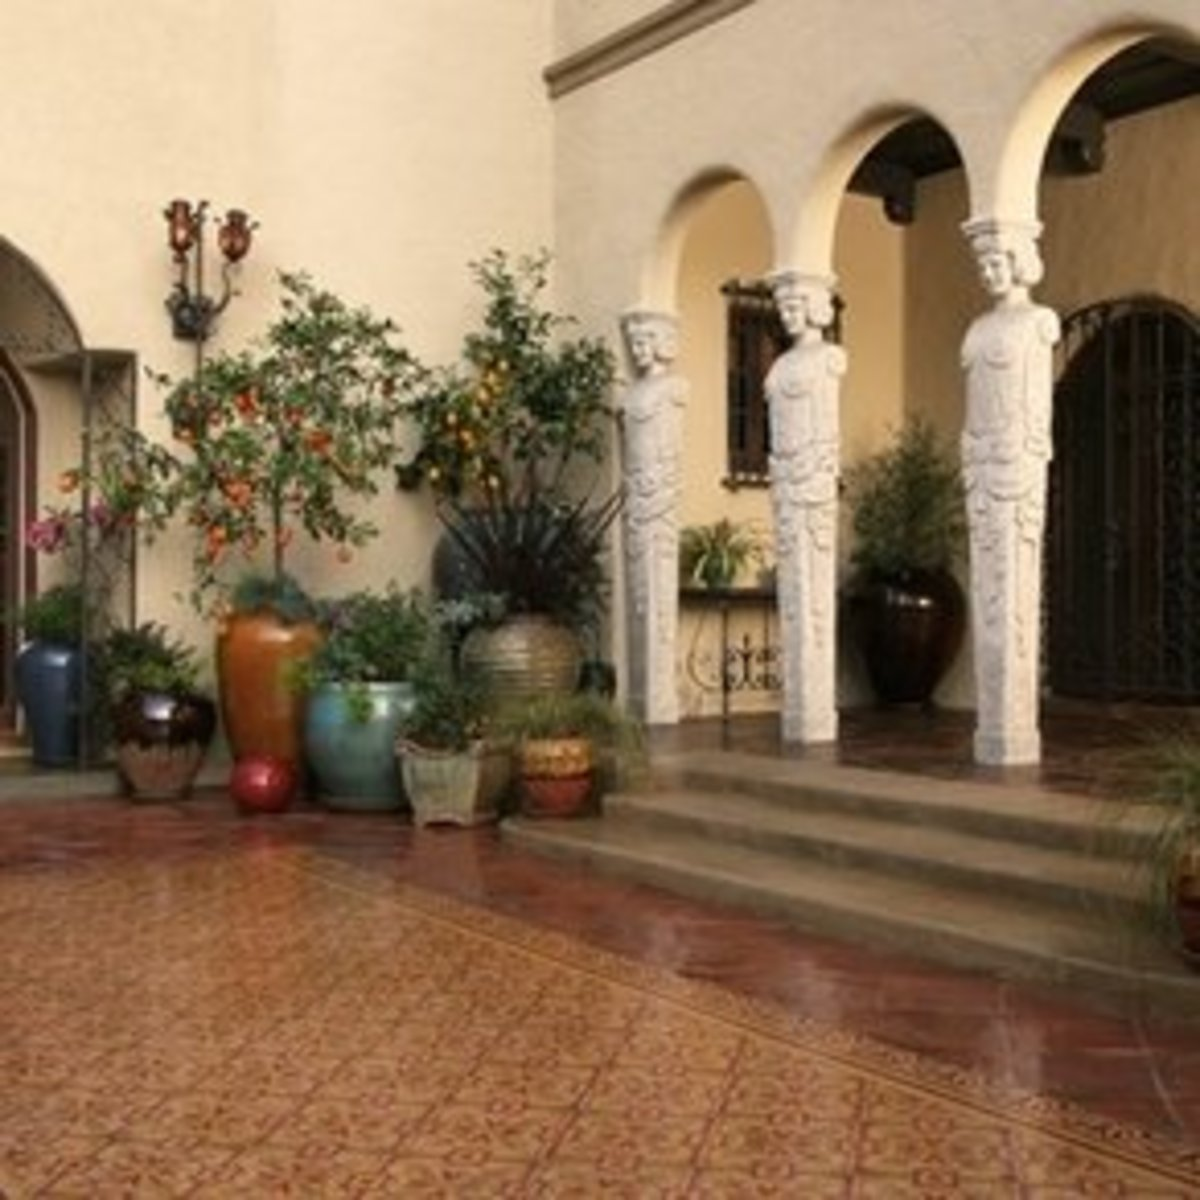 beautiful outdoor Mediterranean tile and stairs in brown and earth tones